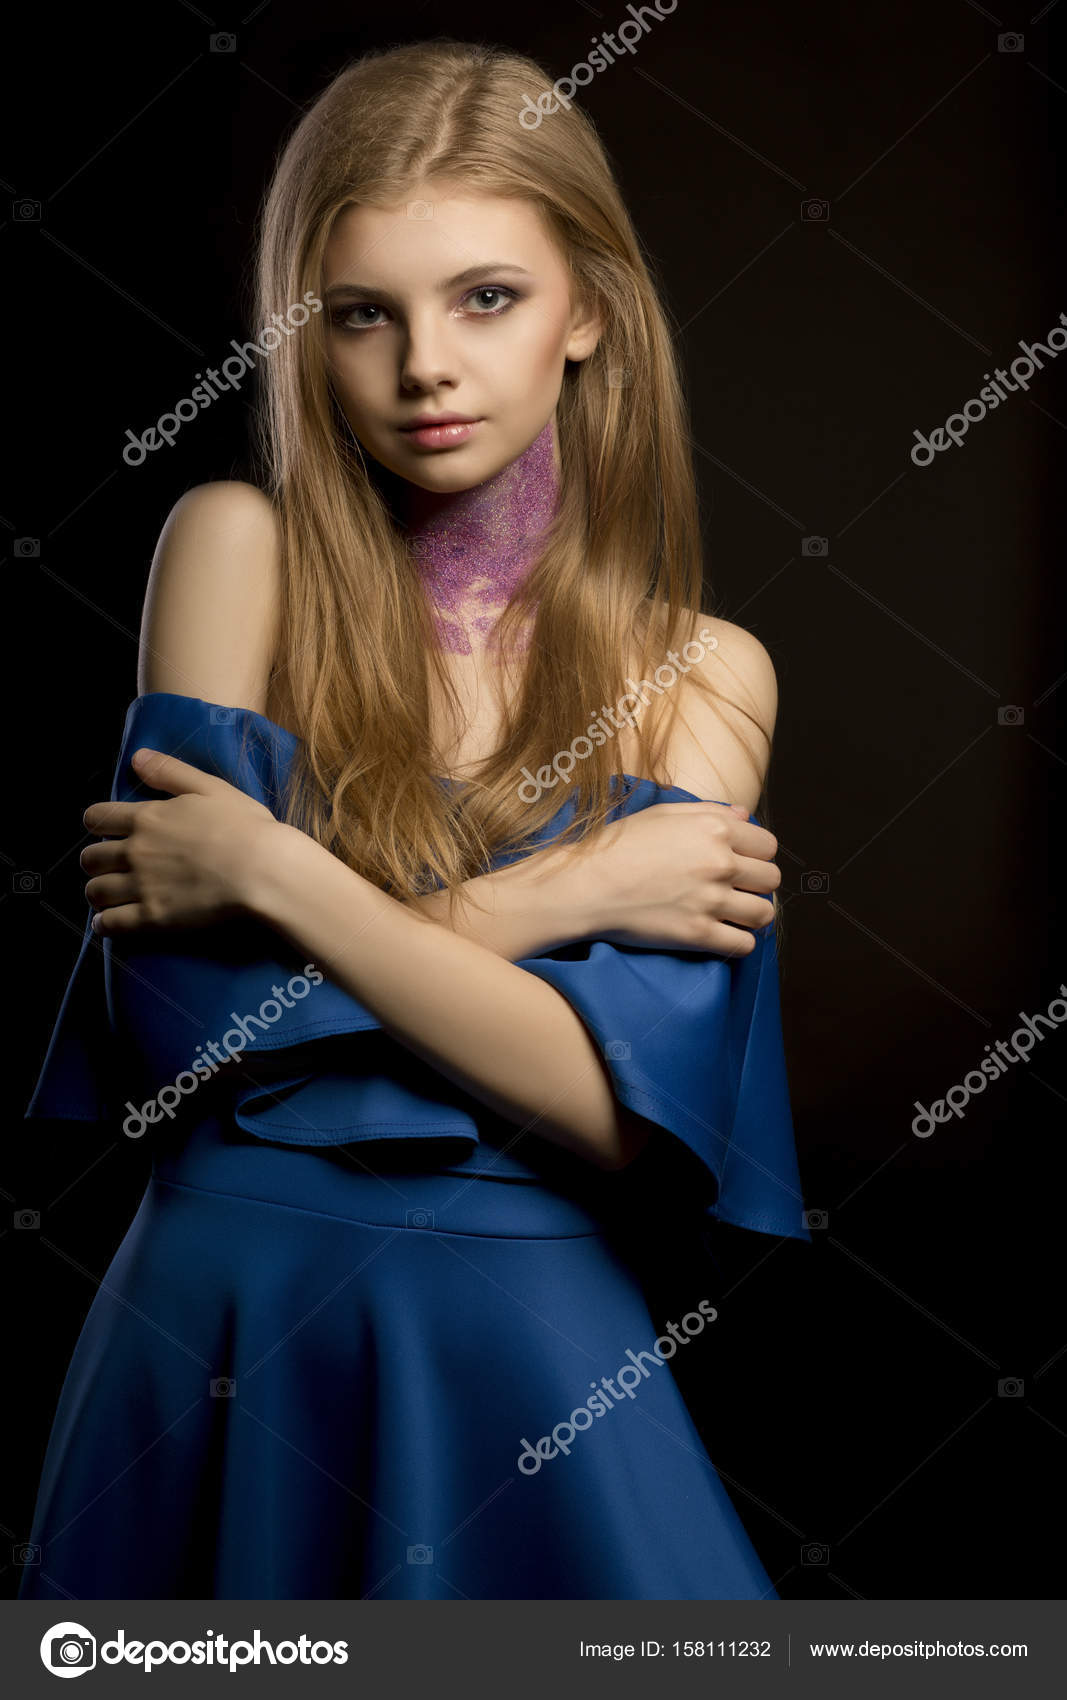 Attractive Blonde Woman With Creative Makeup And Dress With Nake Stock Photo